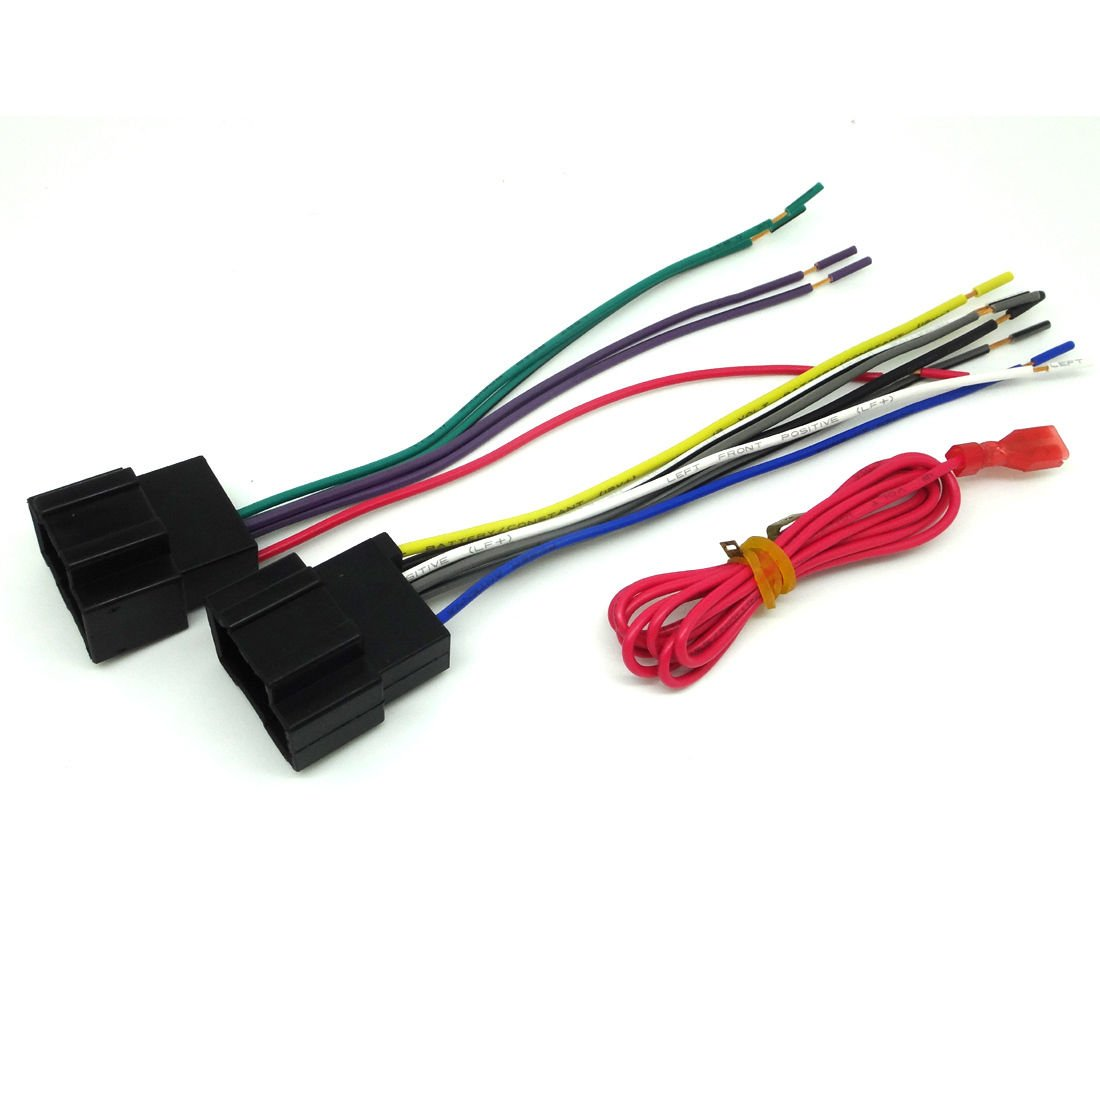 61nu0LRNVFL._SL1100_ amazon com gm car stereo cd player wiring harness wire Wall Plug Wiring at bayanpartner.co